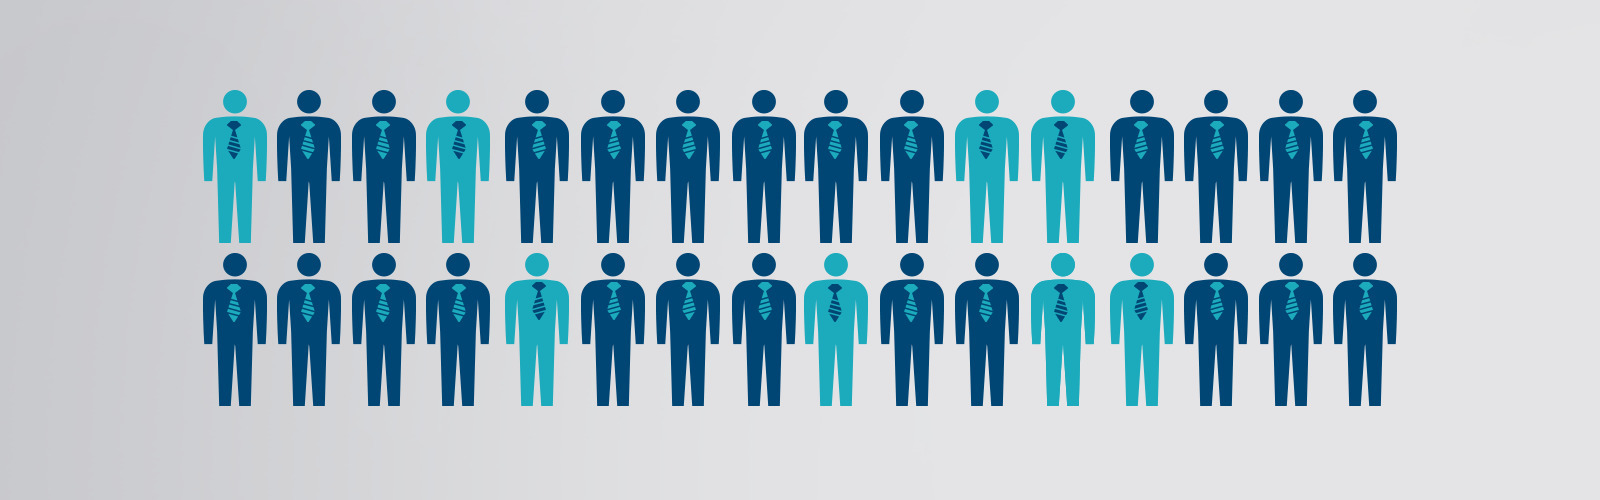 Illustrated icon showing 8 out of 32 men in a lighter shade of blue